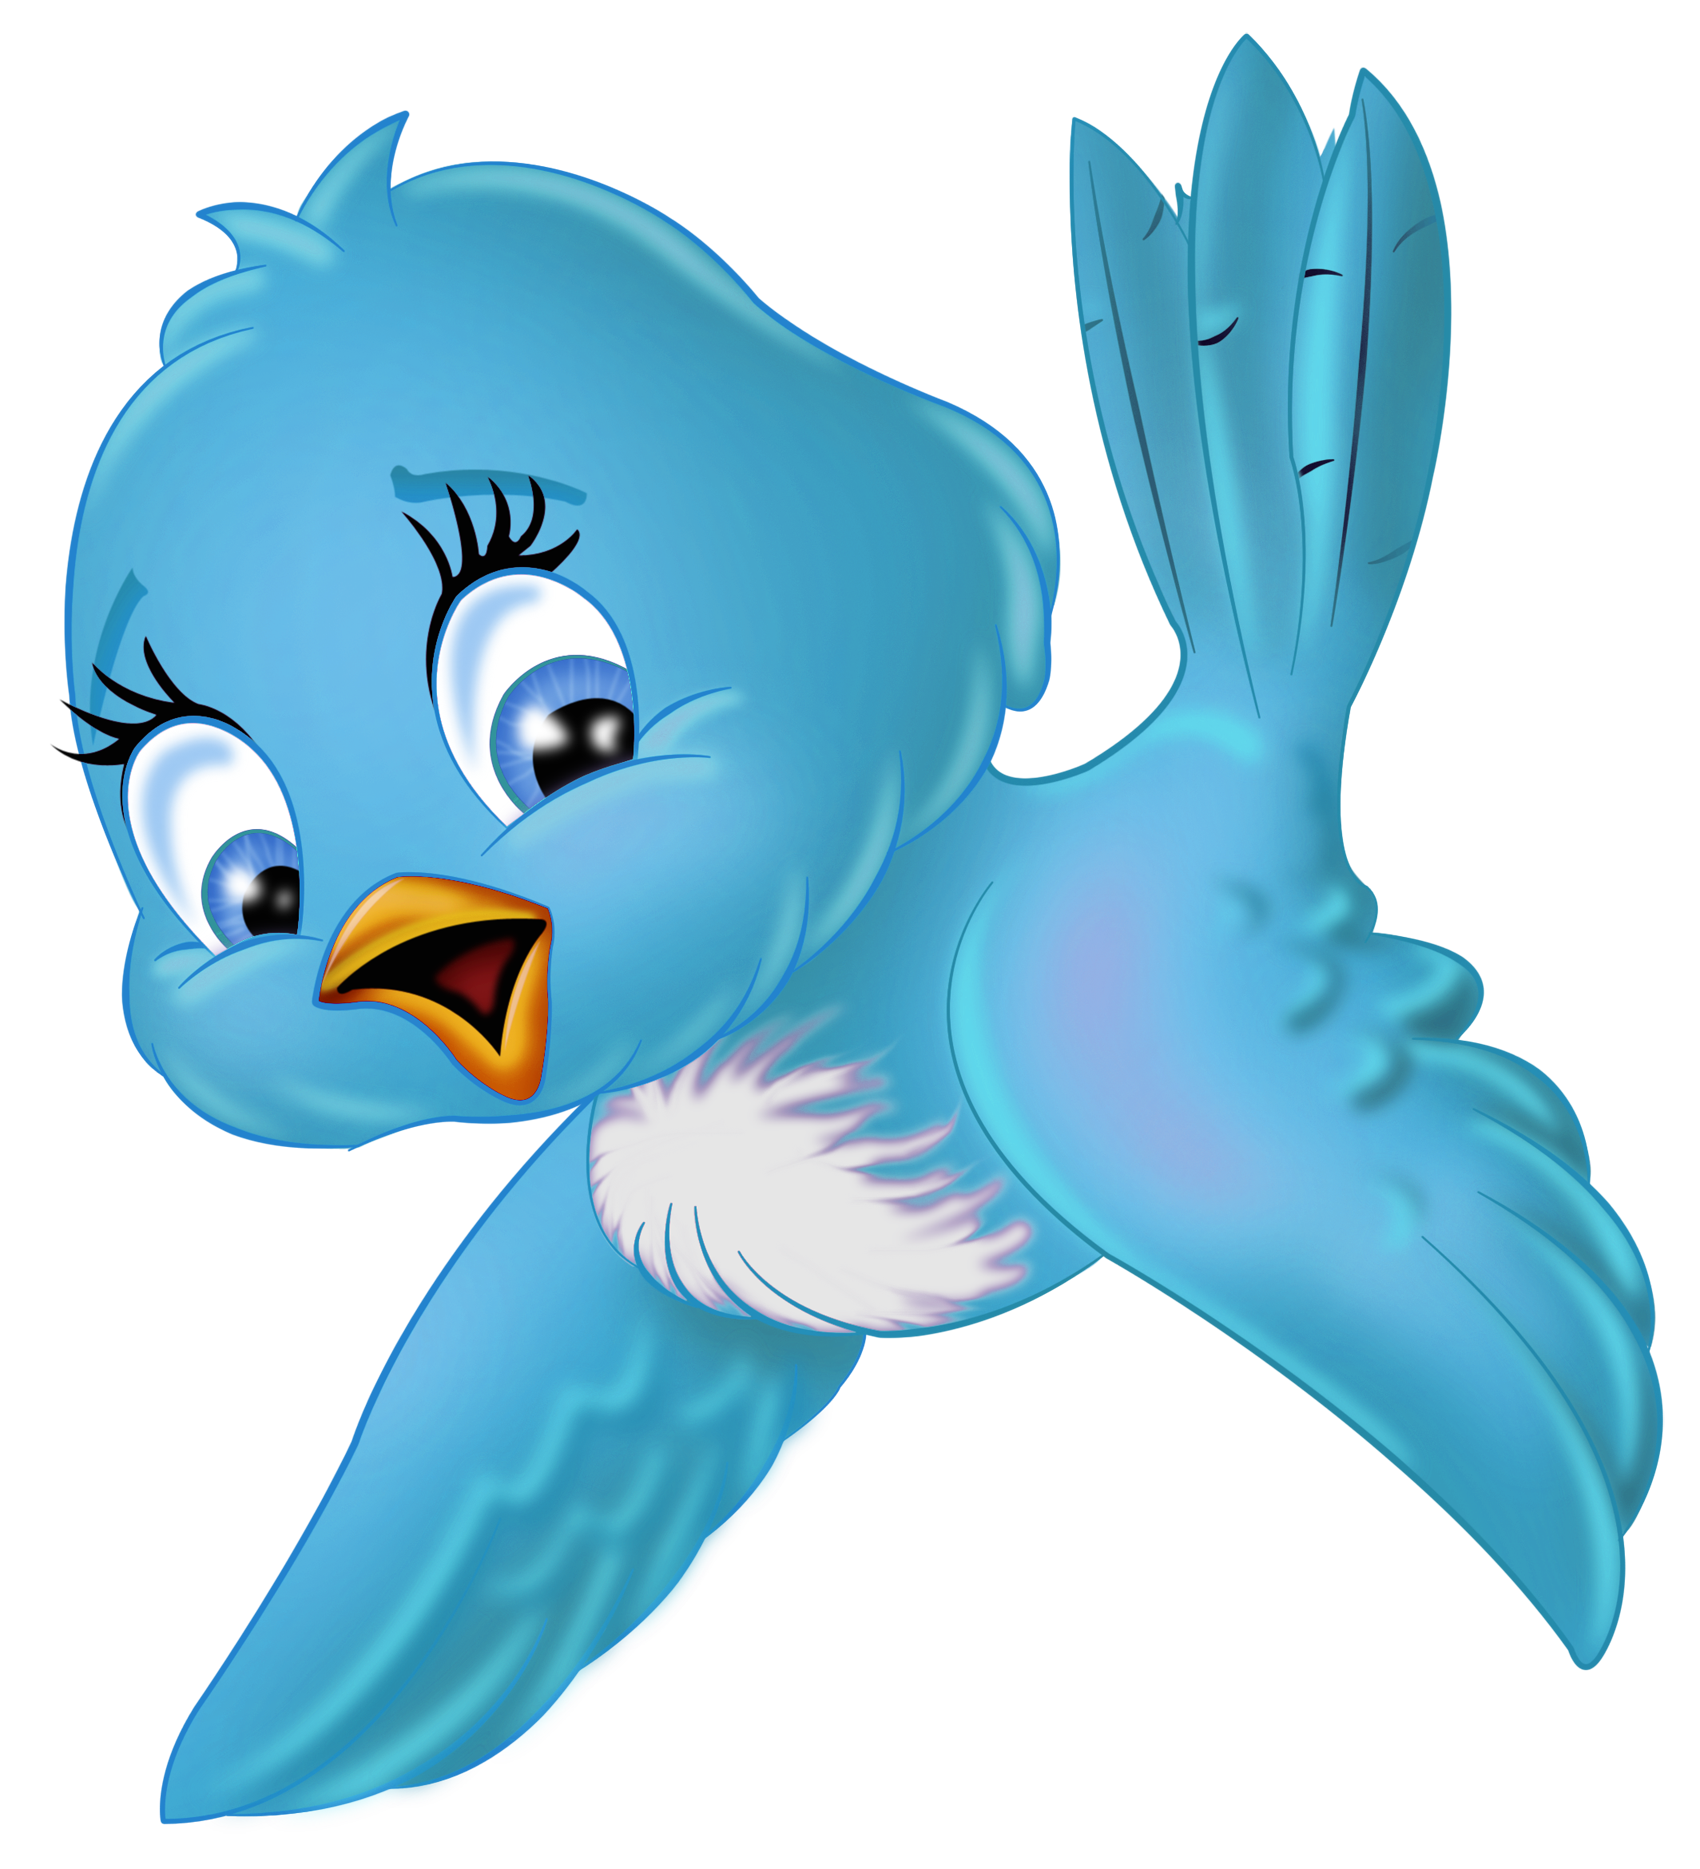 Cartoon blue bird.